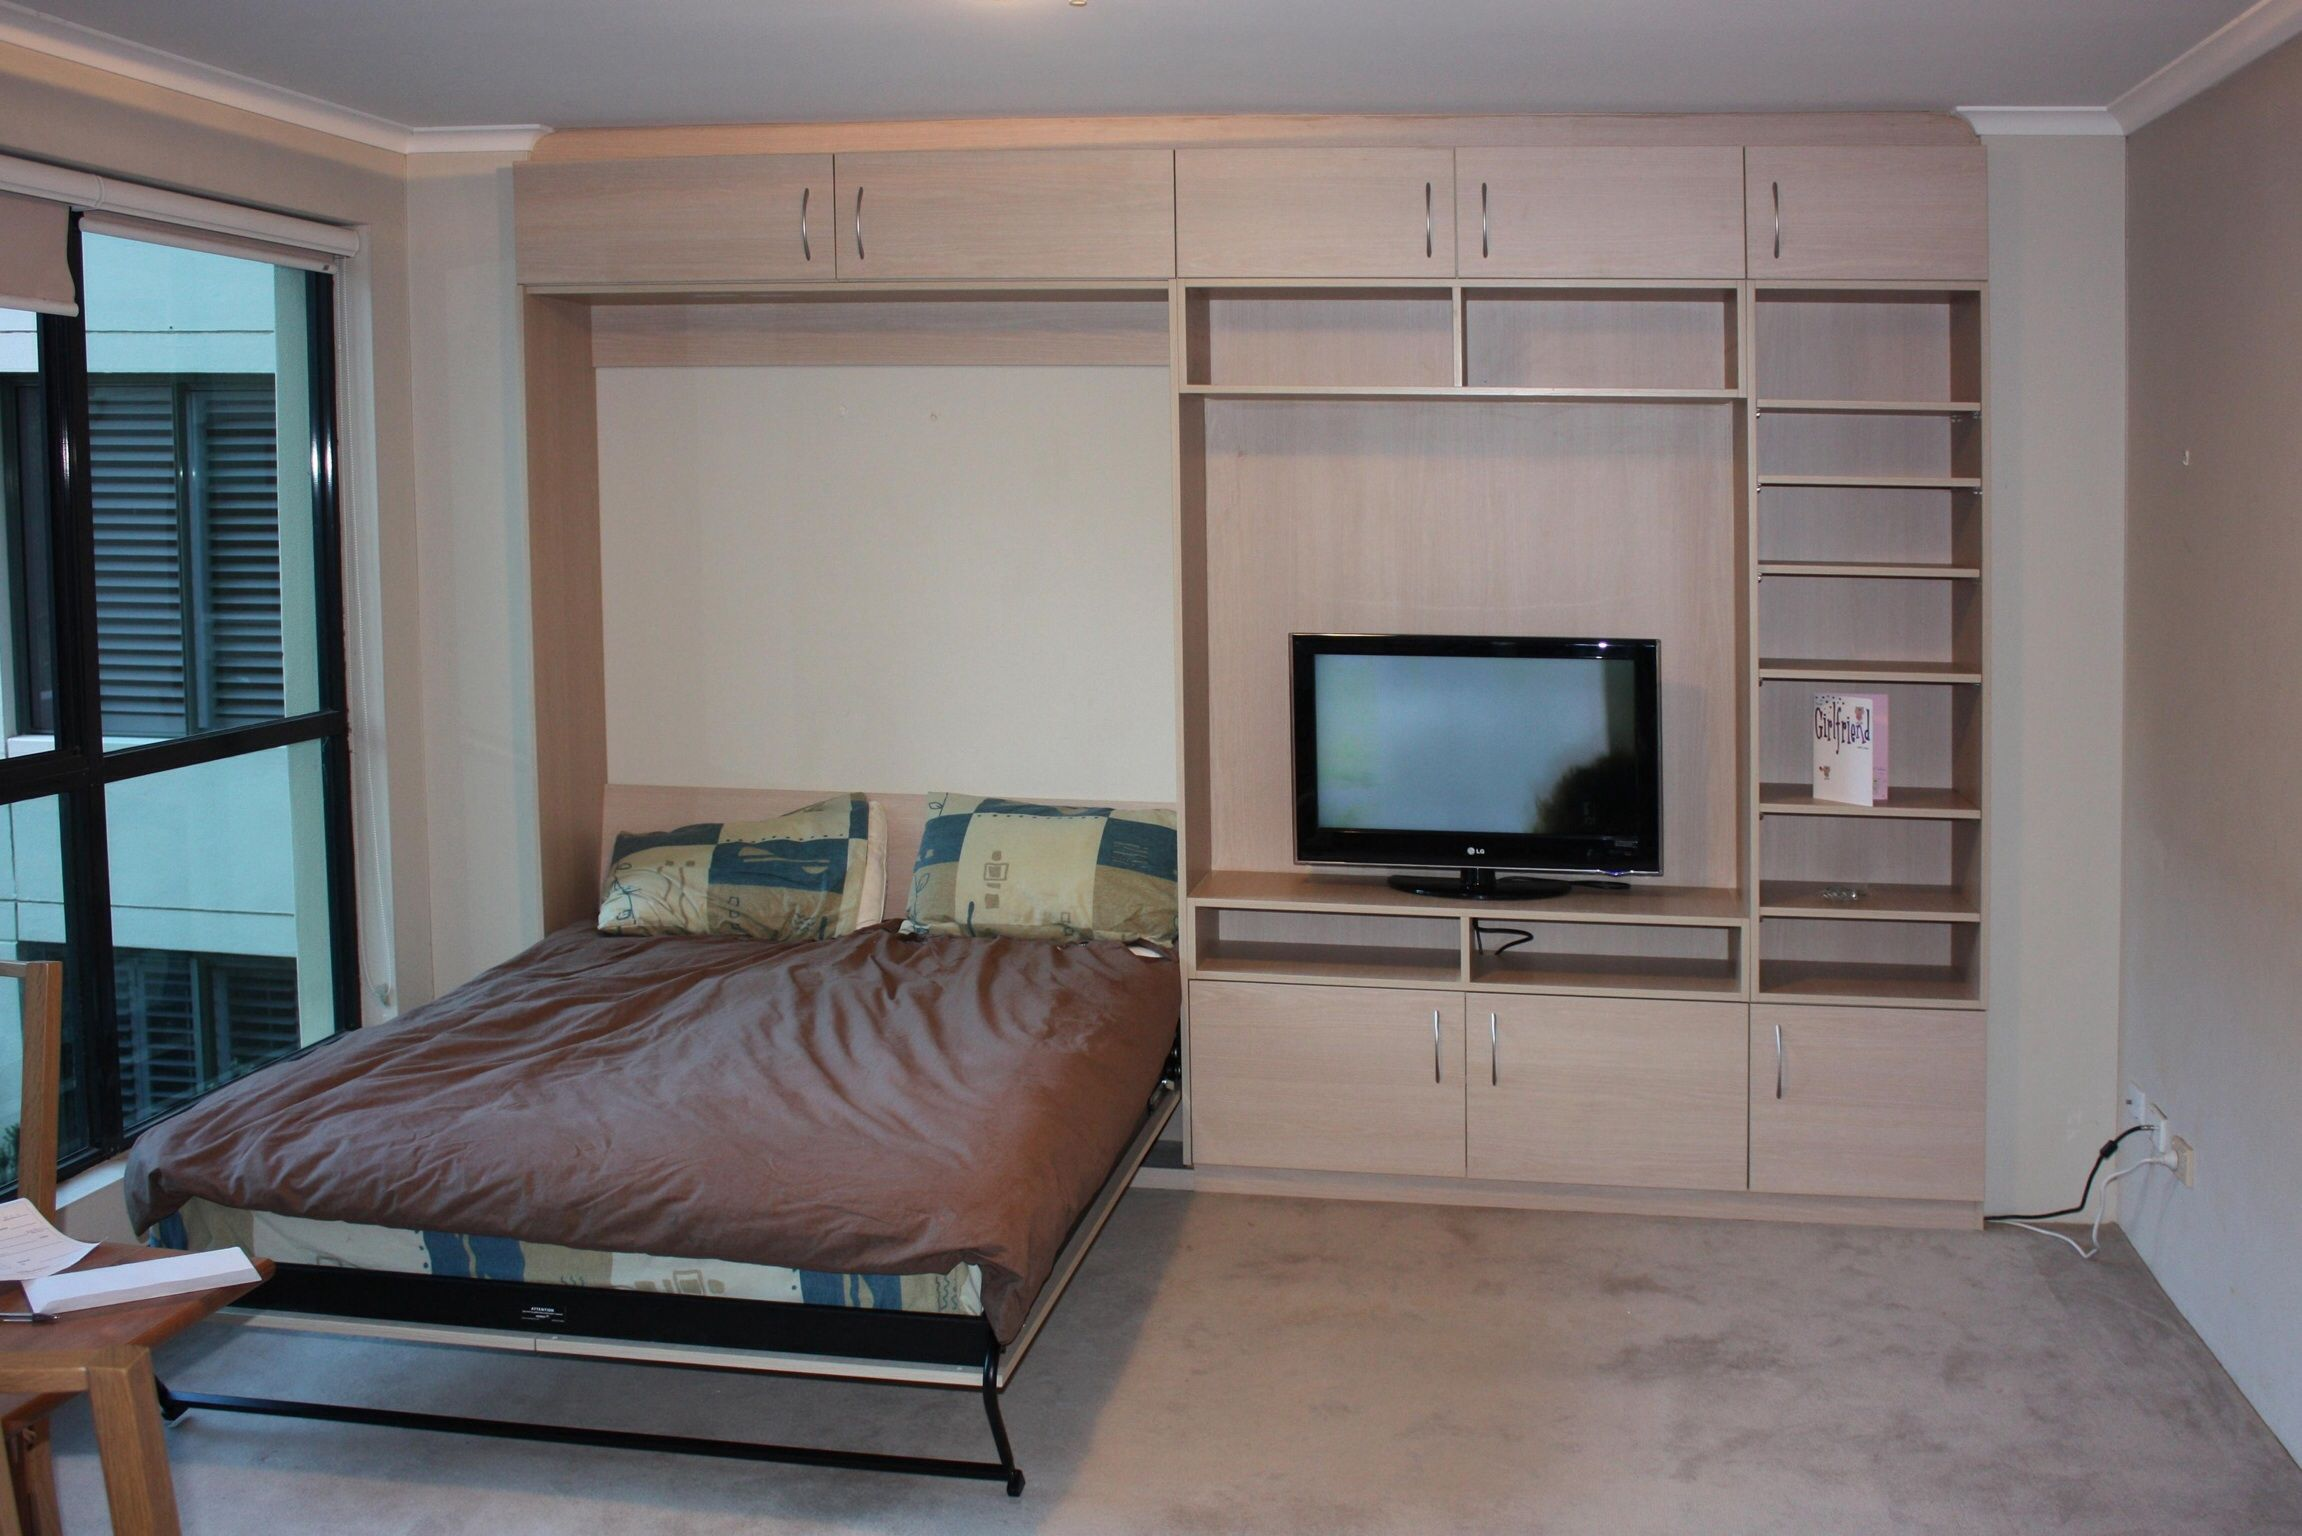 Tiltaway Beds Tiltaway Bed Overheads And Tv Unit Tilt Away Murphy Wall Beds